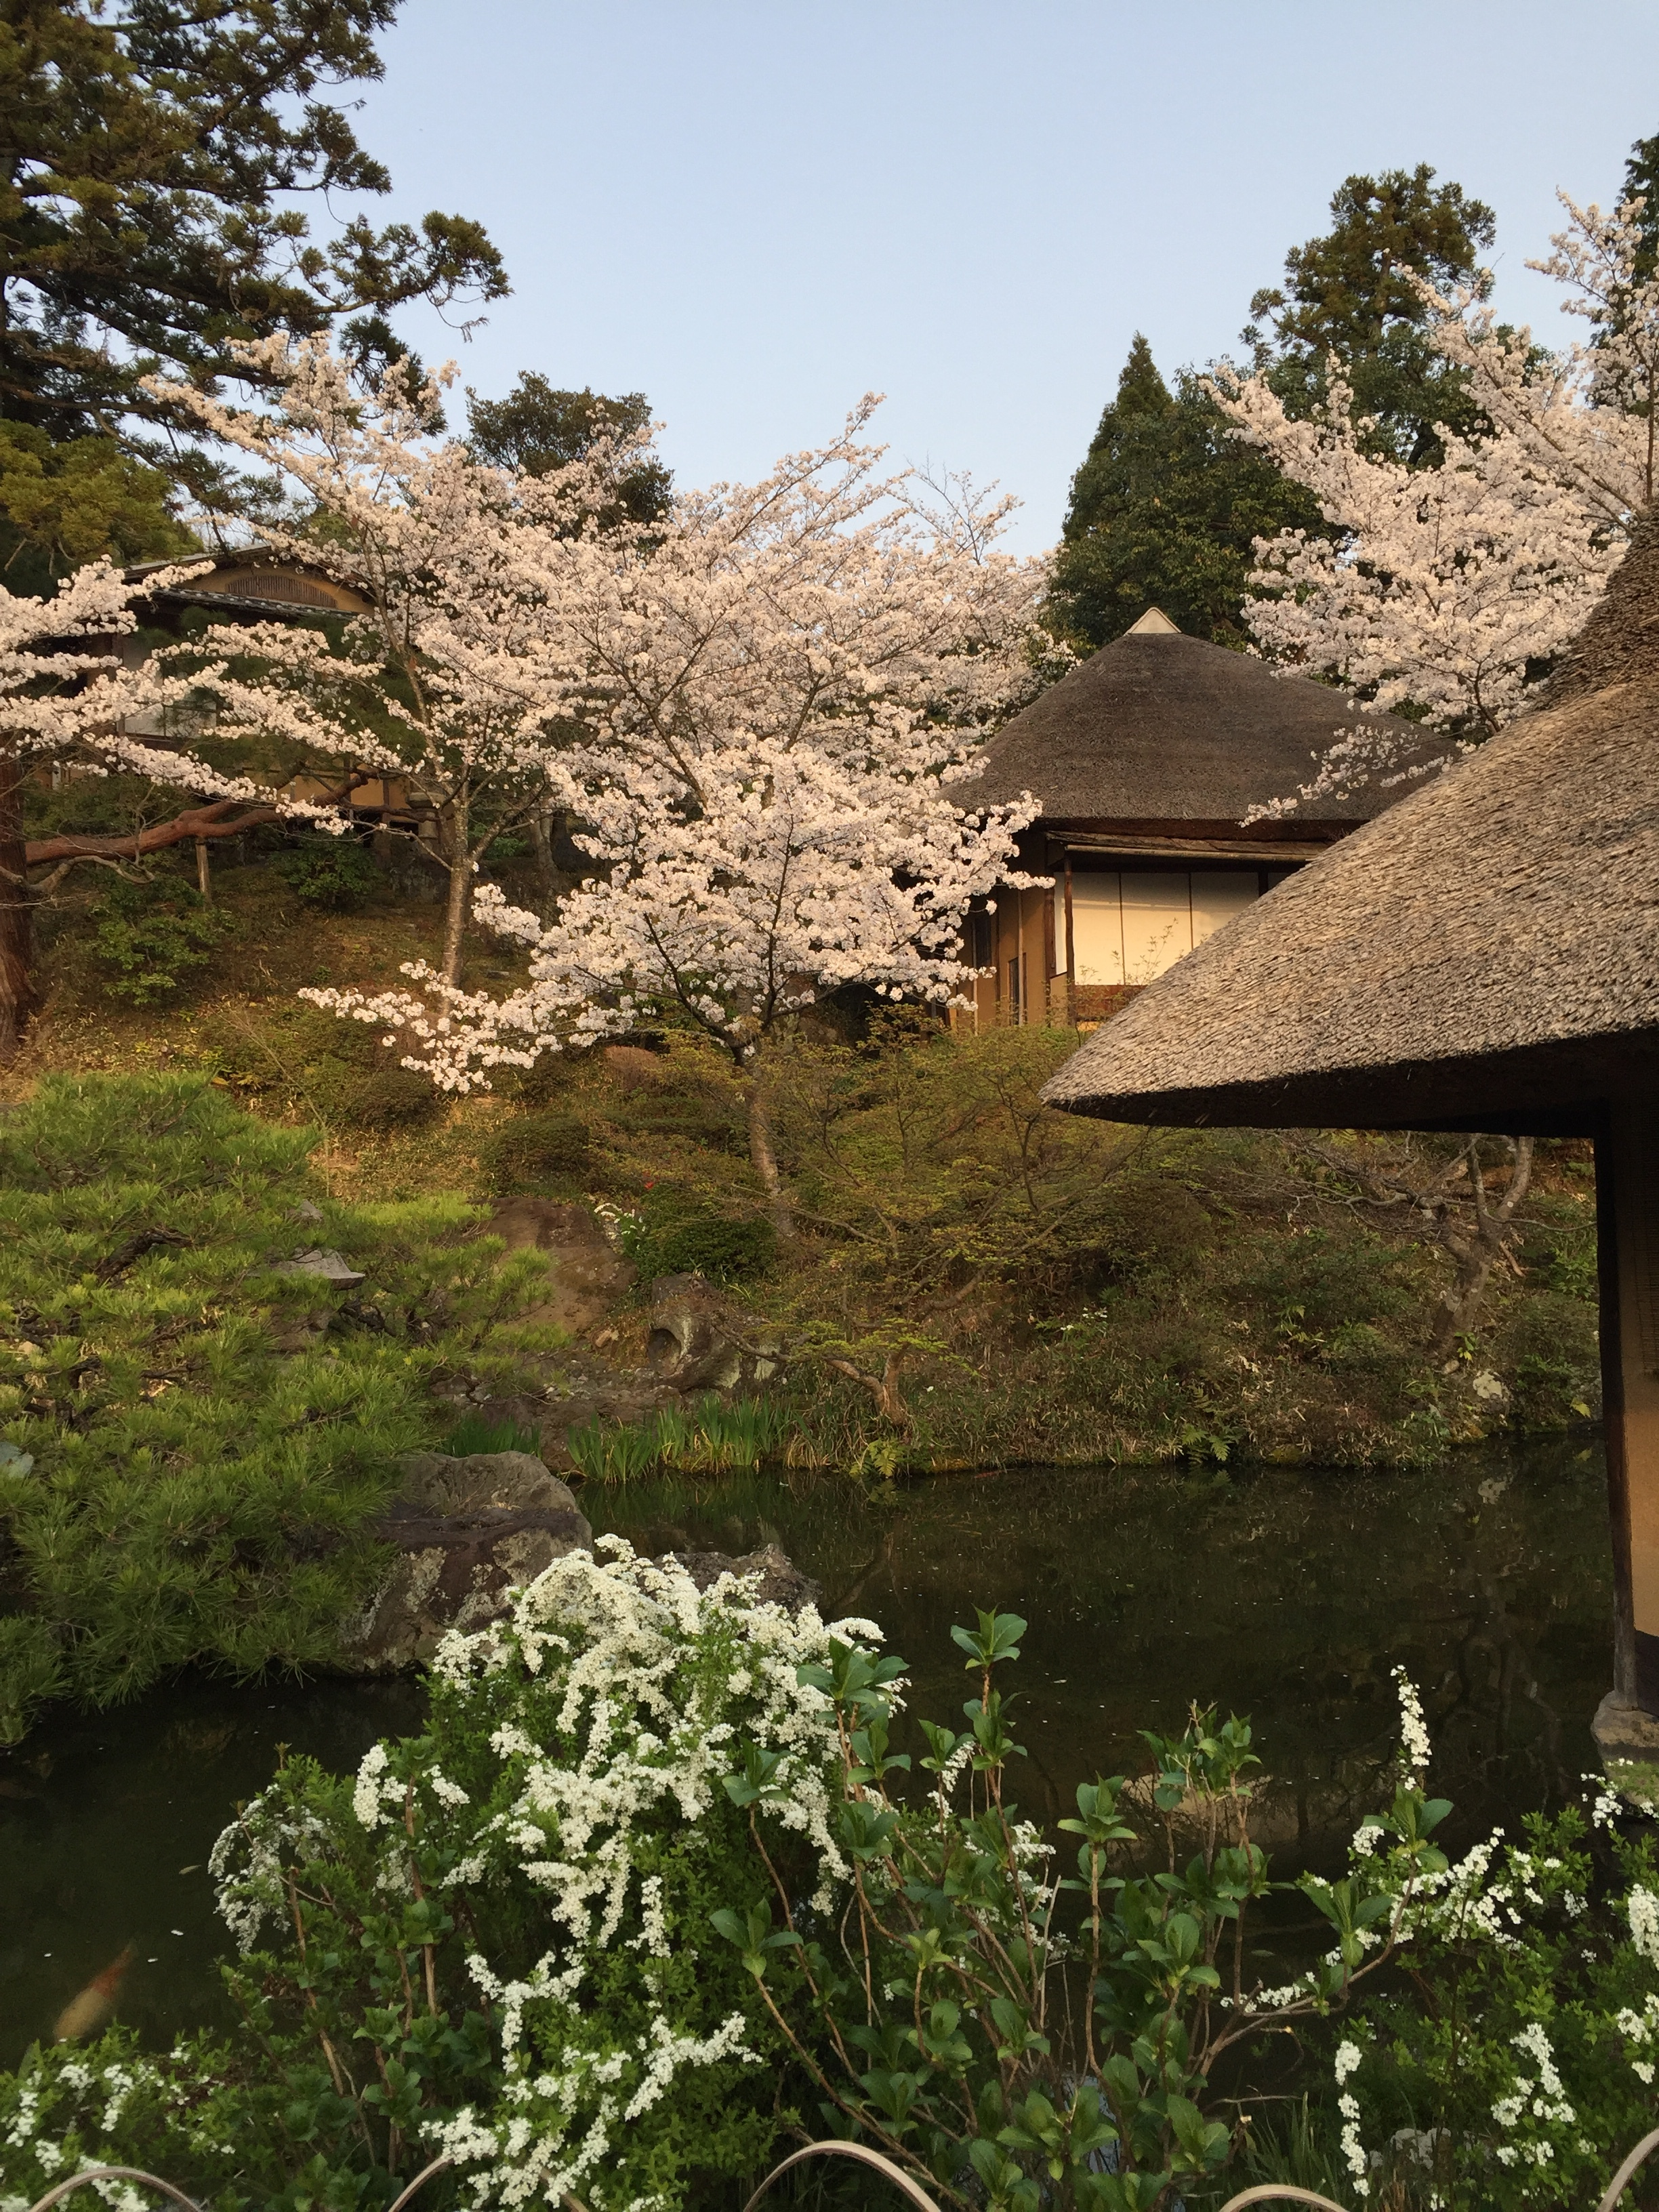 White cherry blossoms in Kyoto  | EAT.PRAY.MOVE Yoga | Kyoto, Japan